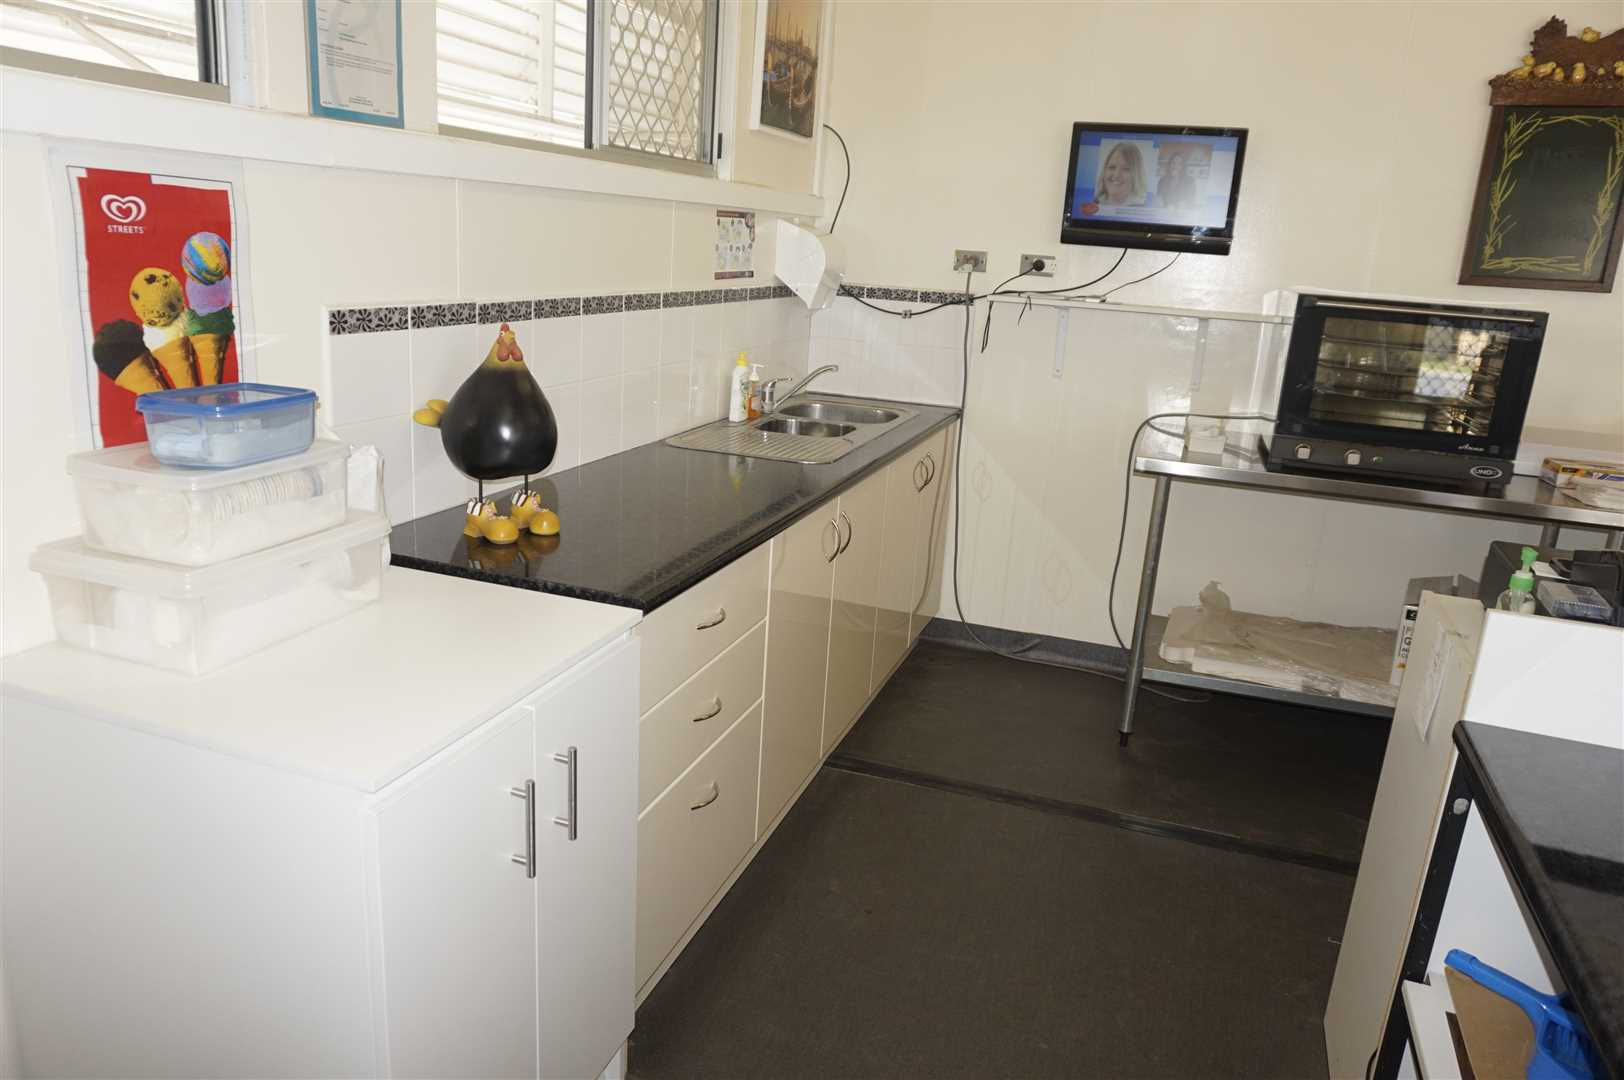 Servery and Sink